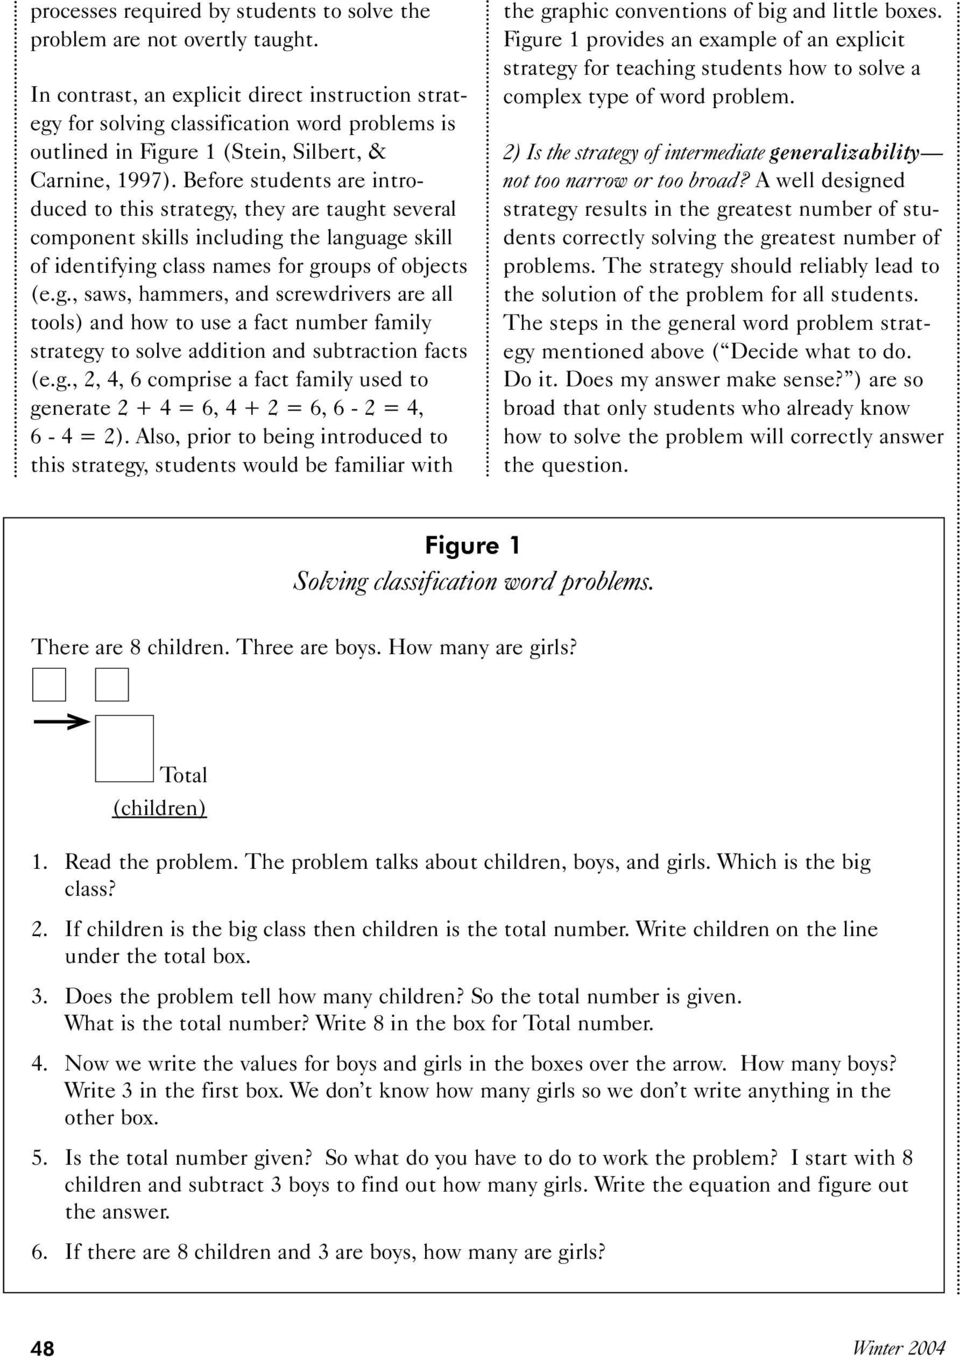 Before students are introduced to this strategy, they are taught several component skills including the language skill of identifying class names for groups of objects (e.g., saws, hammers, and screwdrivers are all tools) and how to use a fact number family strategy to solve addition and subtraction facts (e.